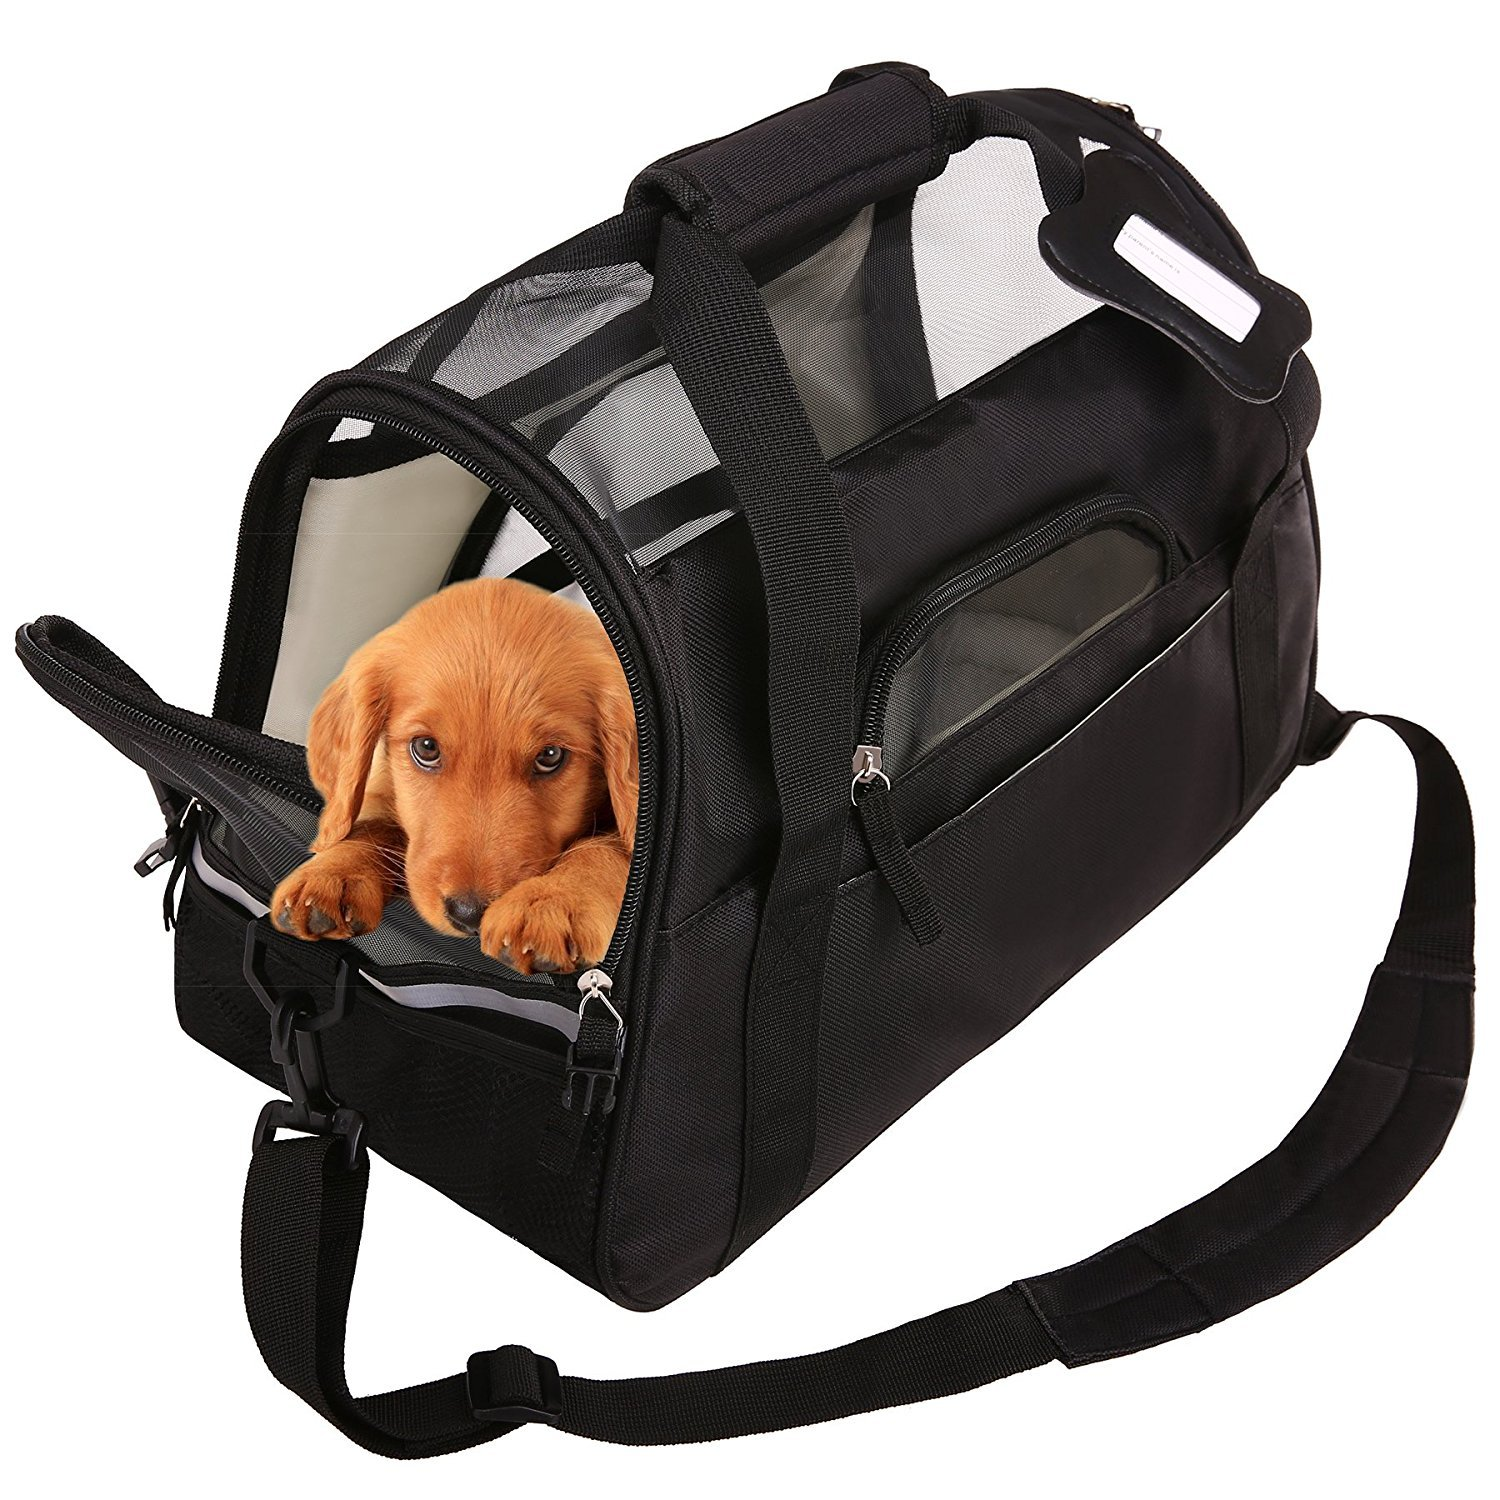 a80777b2345b SAWMONG Portable Pet Carrier Airline Approved Ventilated Comfortable ...